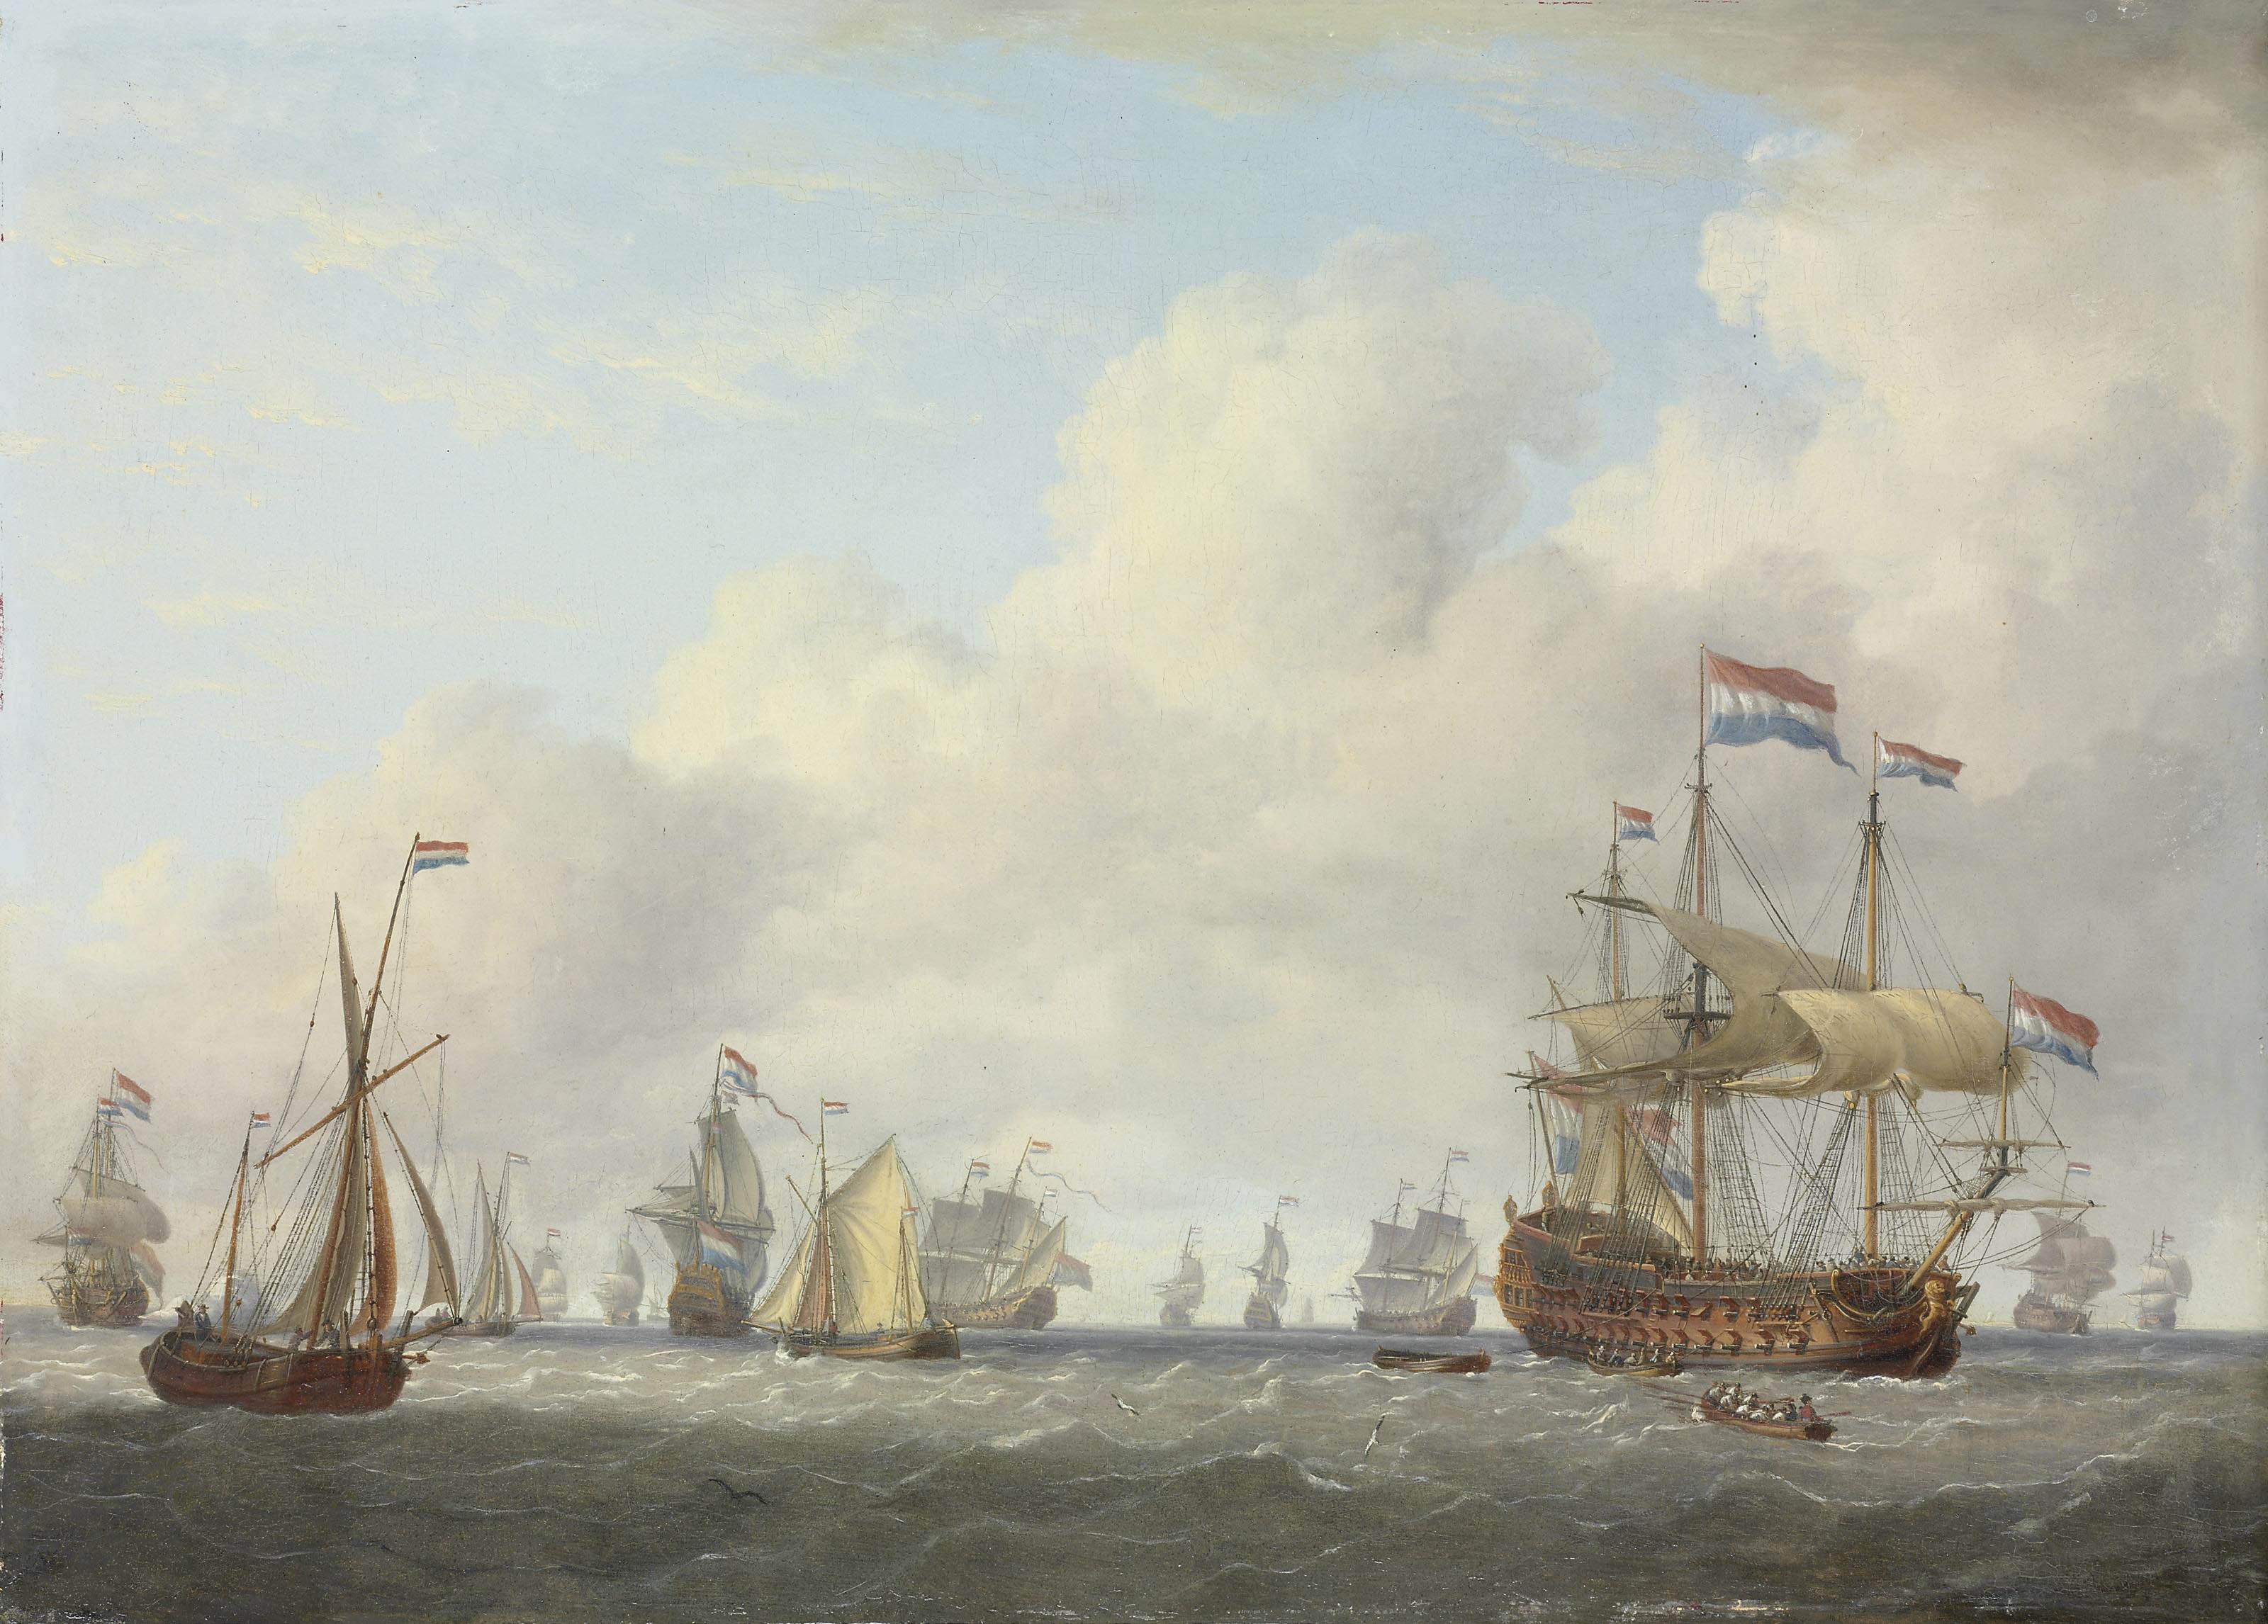 Dutch men-o'-war and other vessels in a fresh breeze